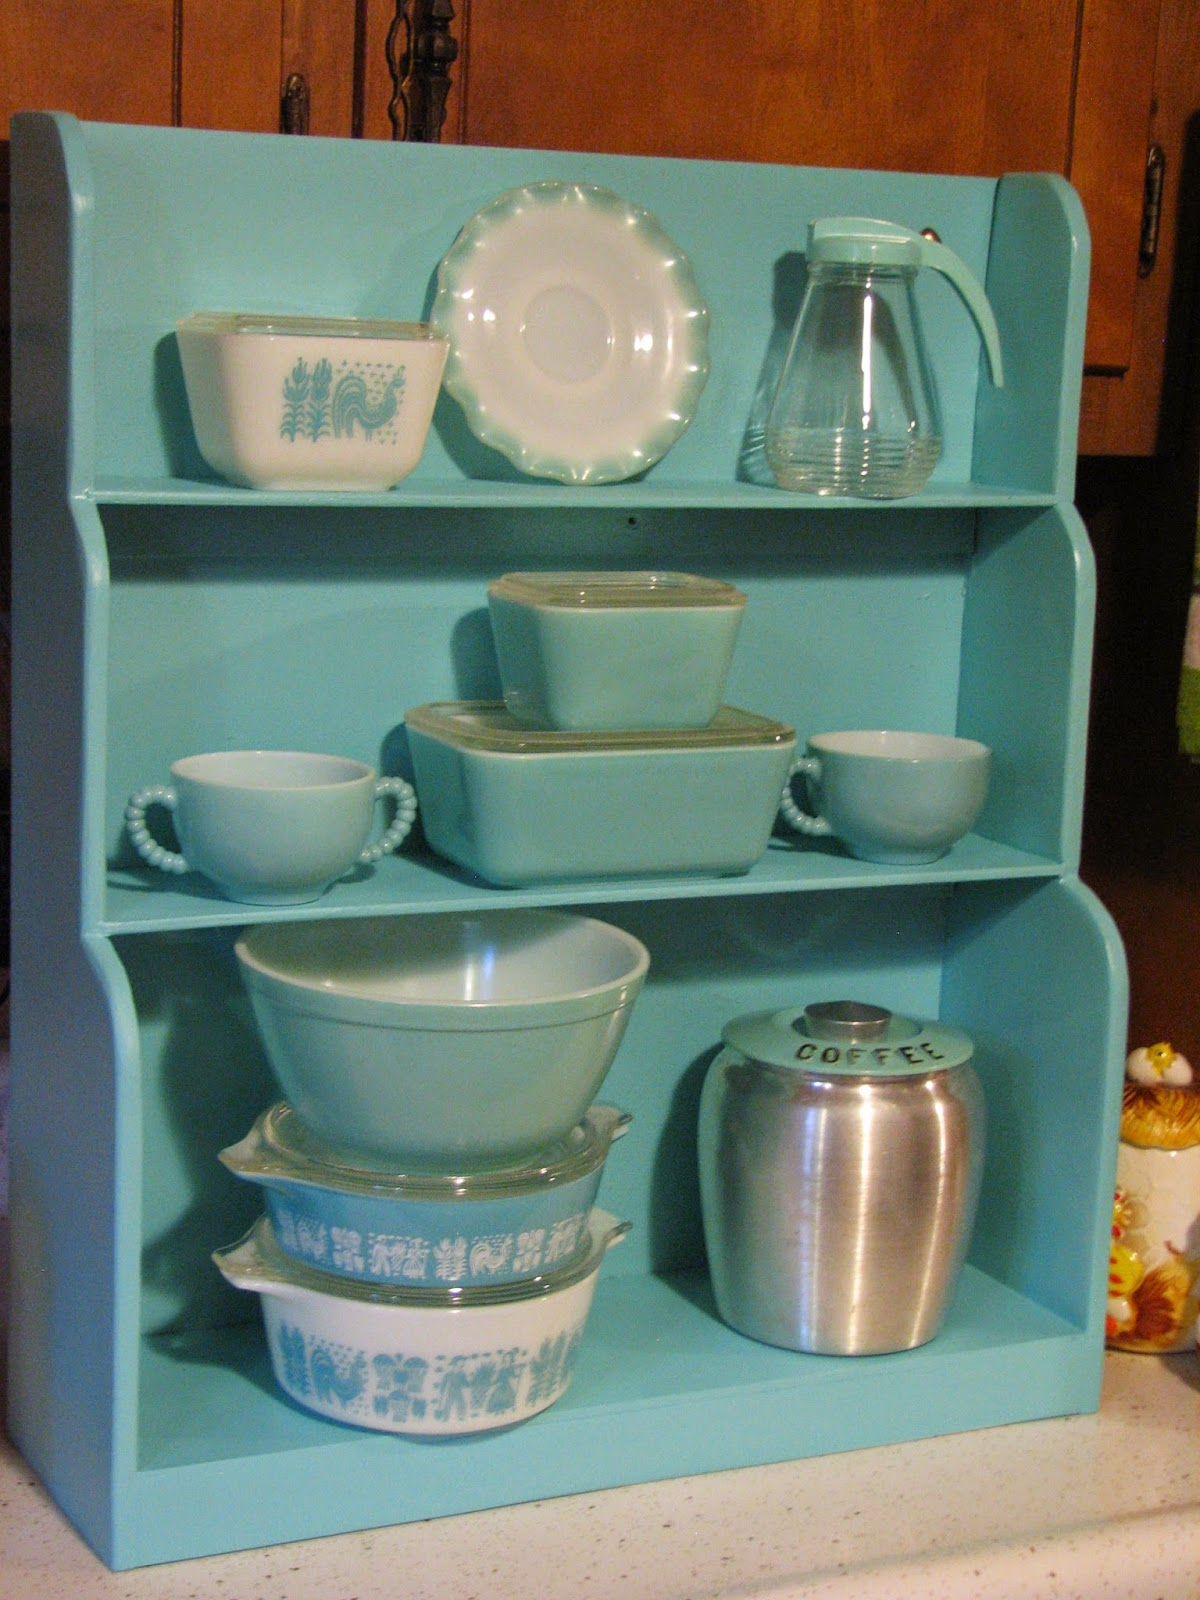 Valspar Color Radiance Spray Paint Part - 26: As Much As I Love This Color, Turquoise On Turquoise Like This Doesnu0027t  Exactly Make The Display Pieces Pop. When I Get This Shelf Secured To The  Wall, ...